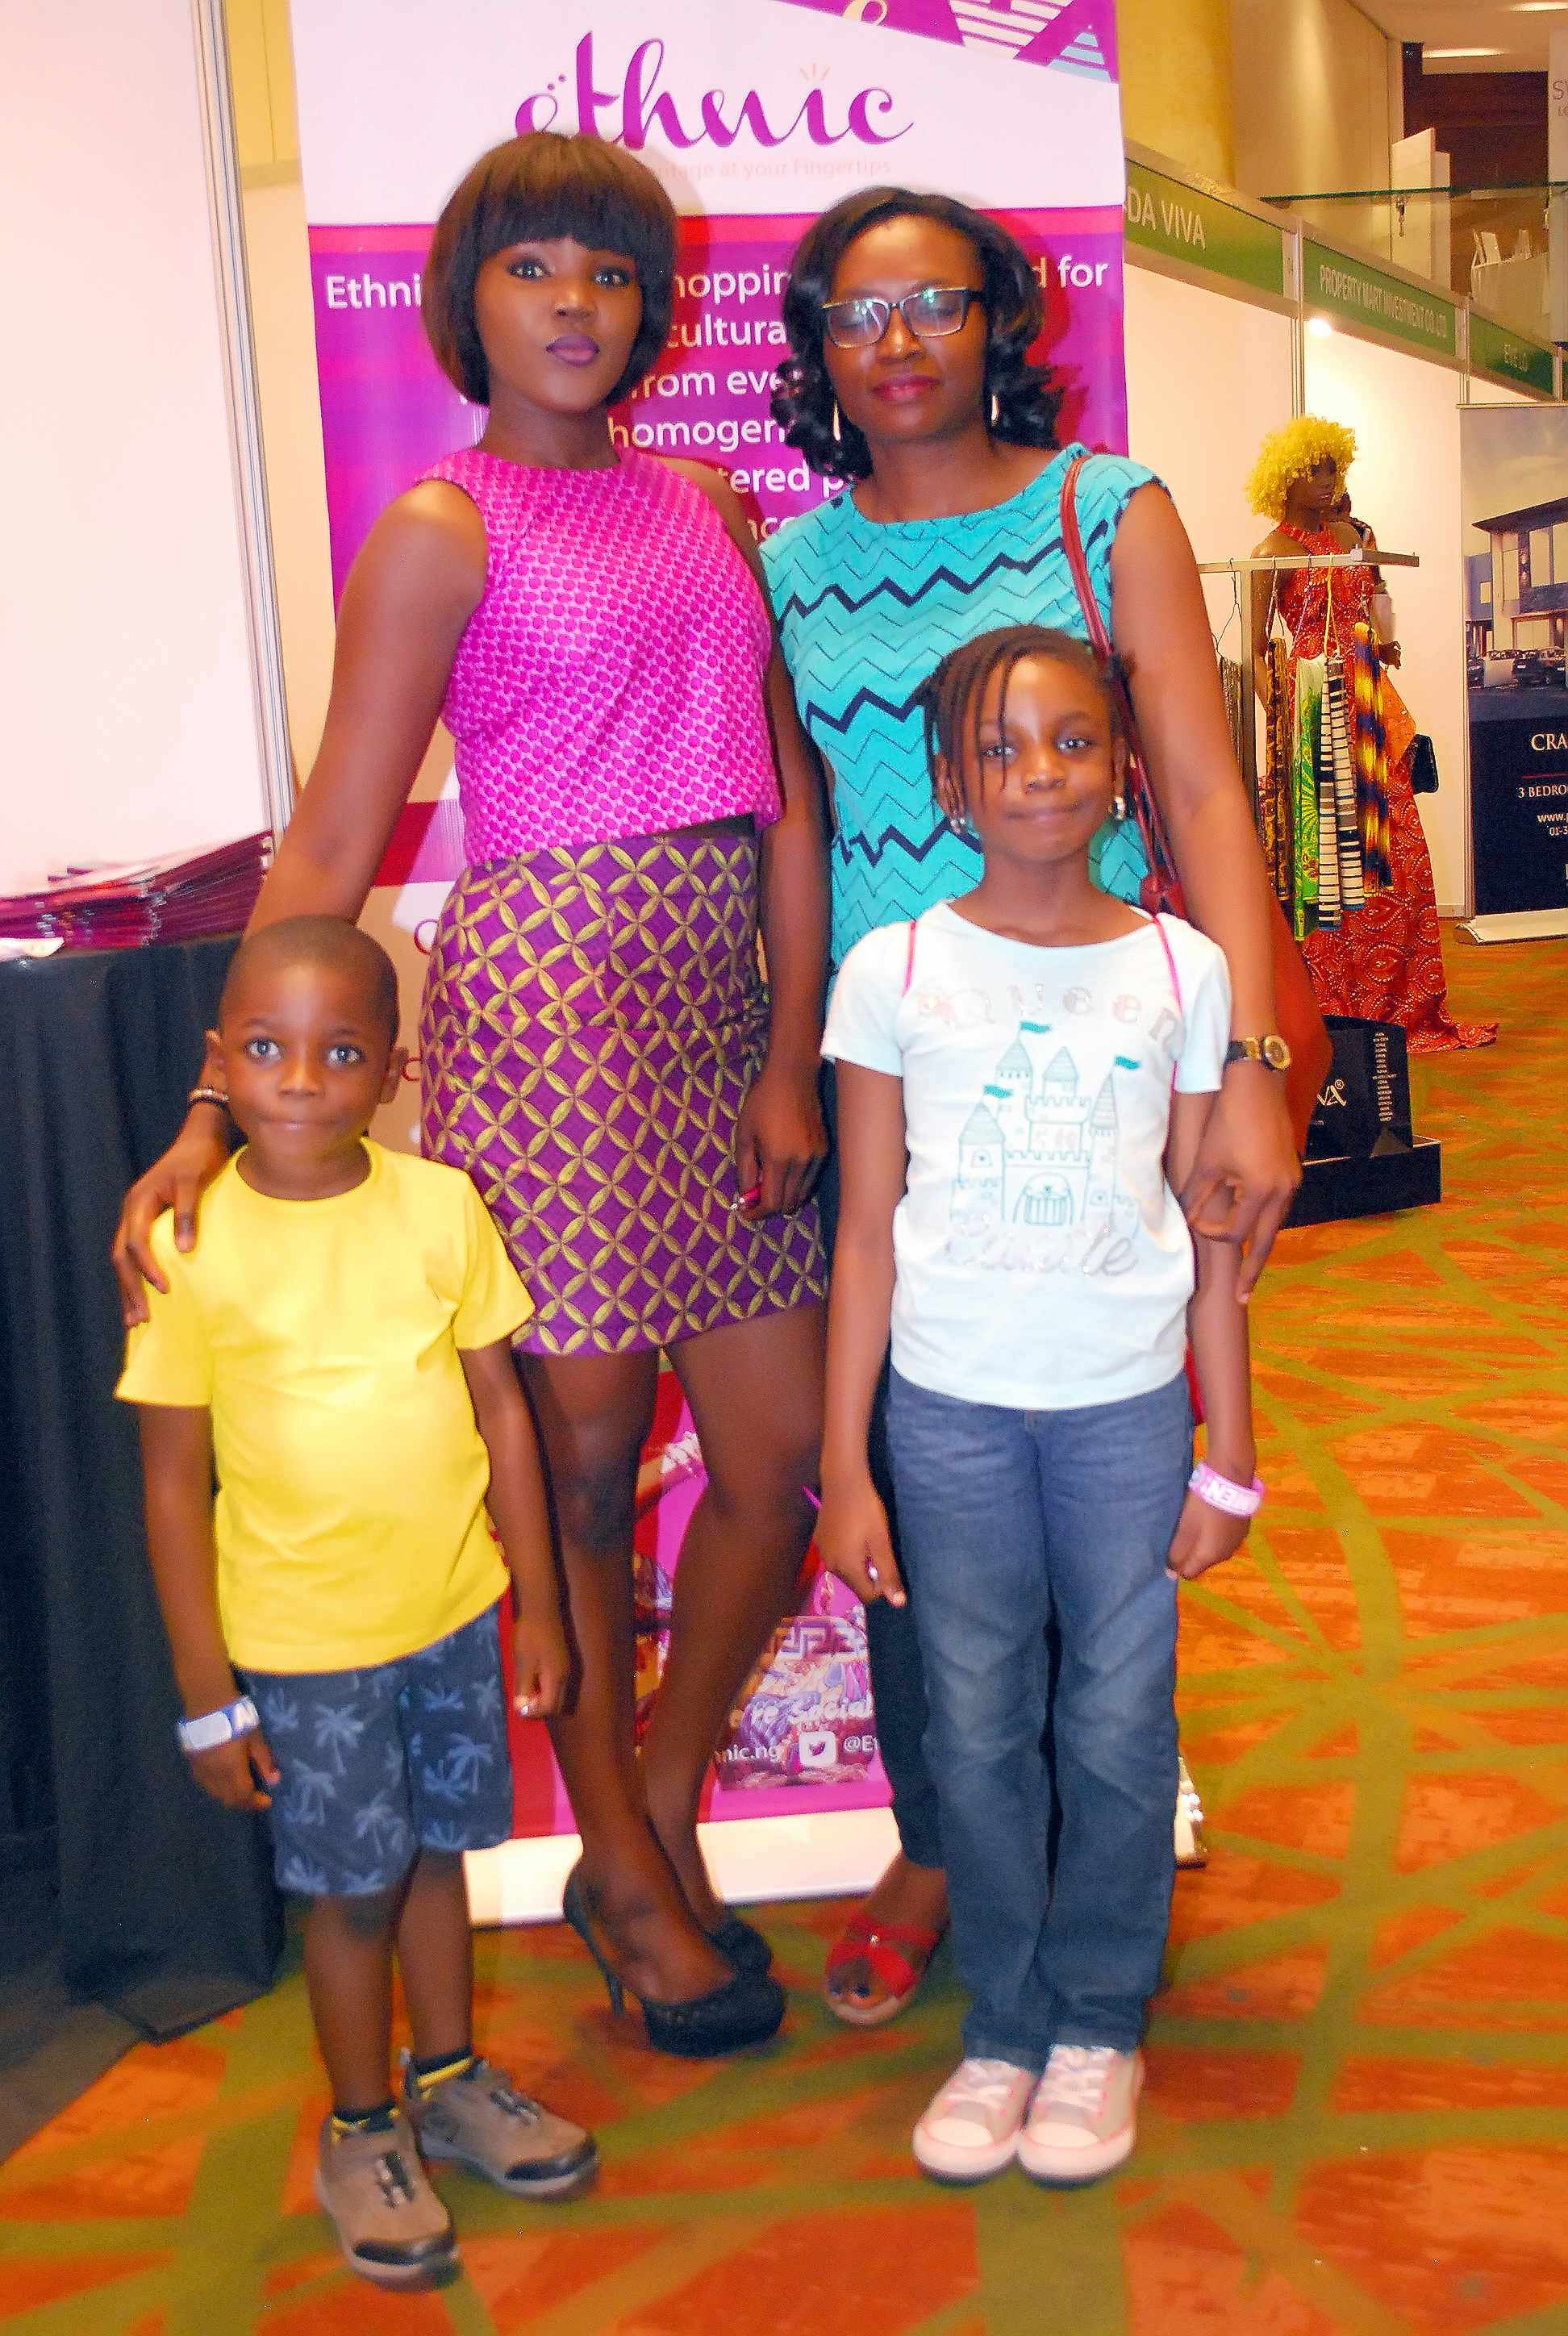 excited guest and her kids with Ethnic's pretty usher